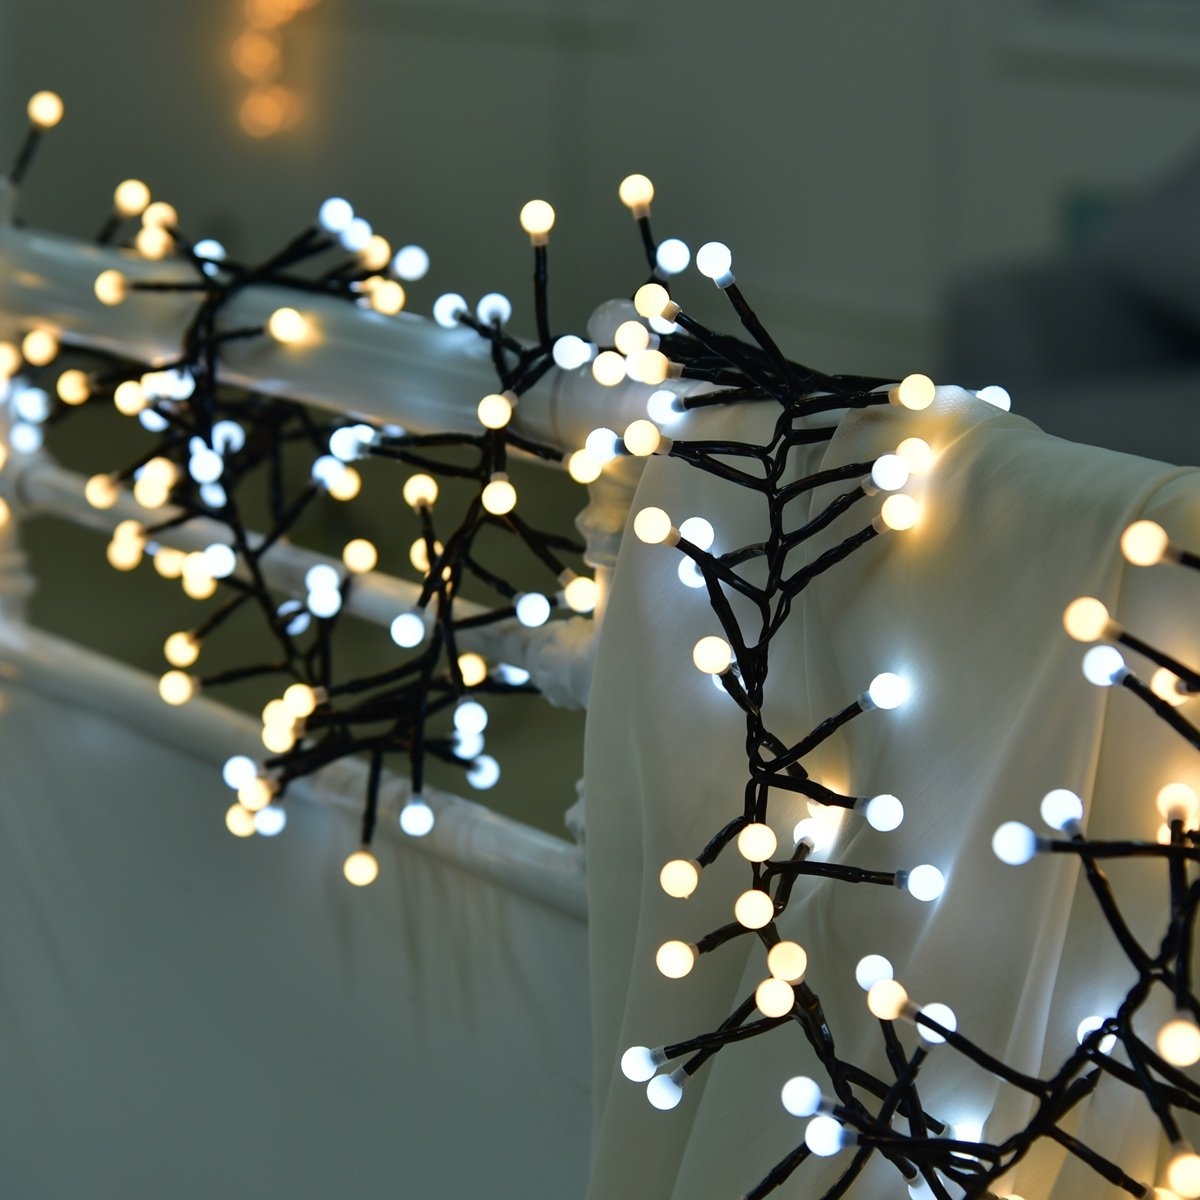 91d162dac80 Luces De Navidad YMing LED Coloreado 8 Modos 9.8Ft 400 Bombillas